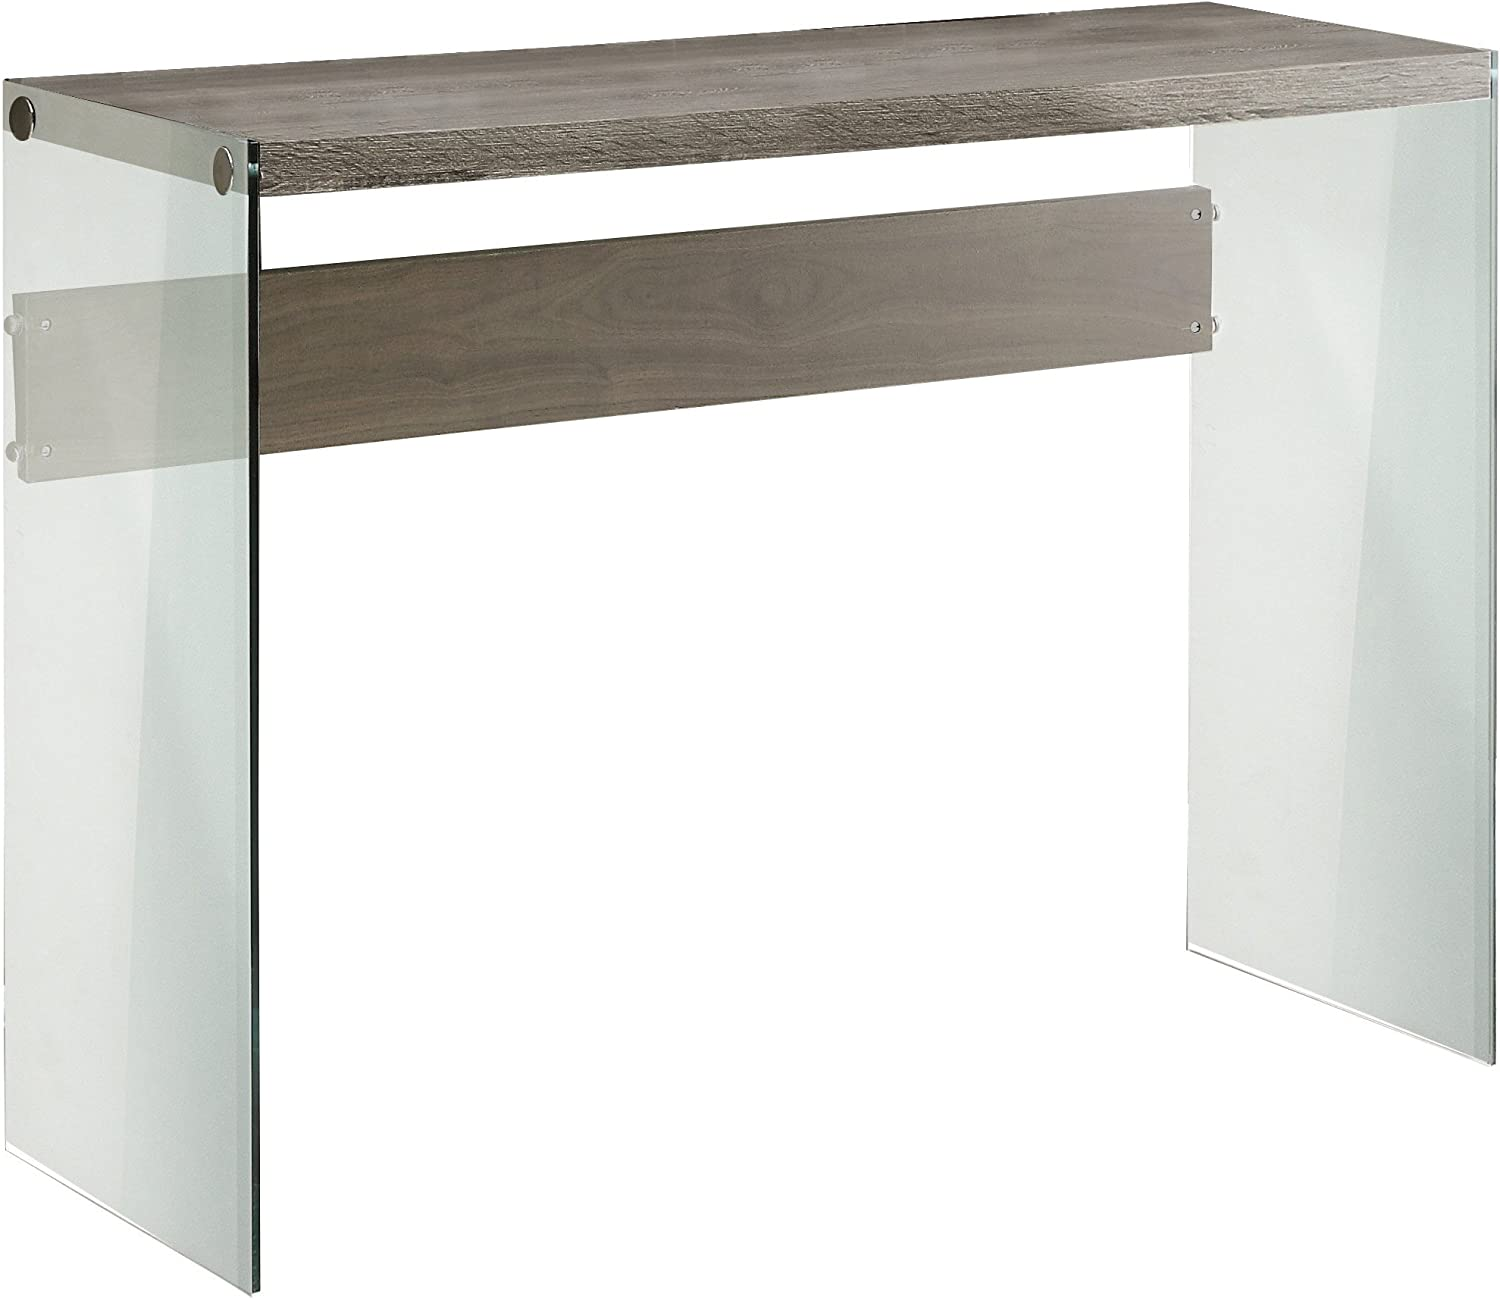 "Monarch specialties I 3055, Console Sofa Table, Tempered Glass, Dark Taupe, 44""L"